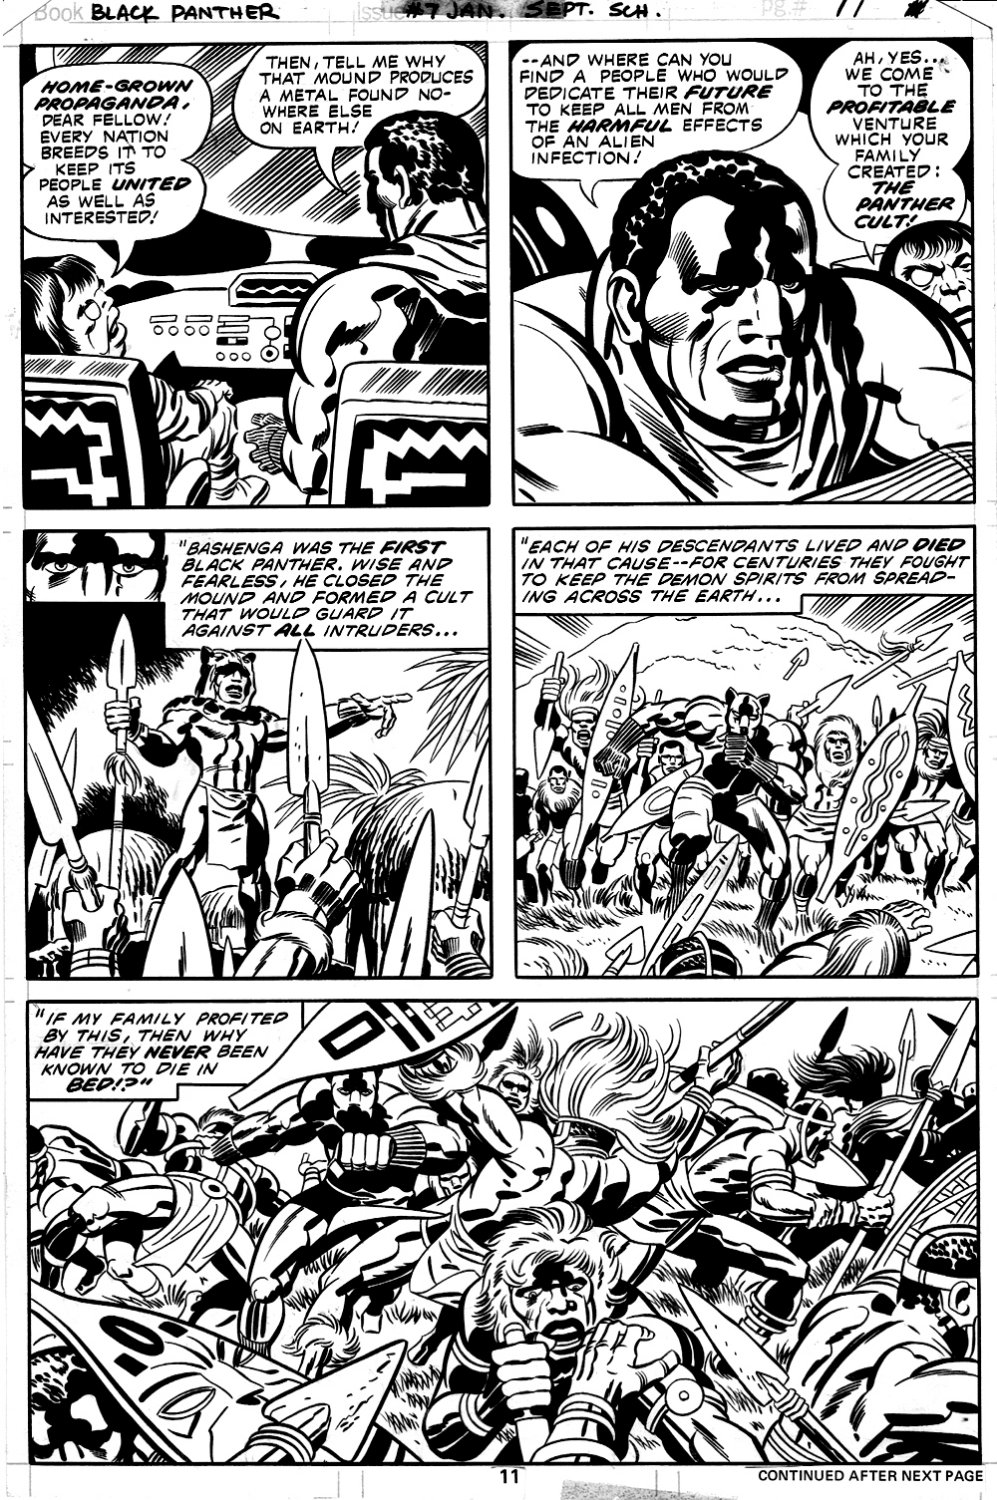 Black Panther #7 p 11 (BLACK PANTHER IN COSTUME BATTLE PAGE!) 1977